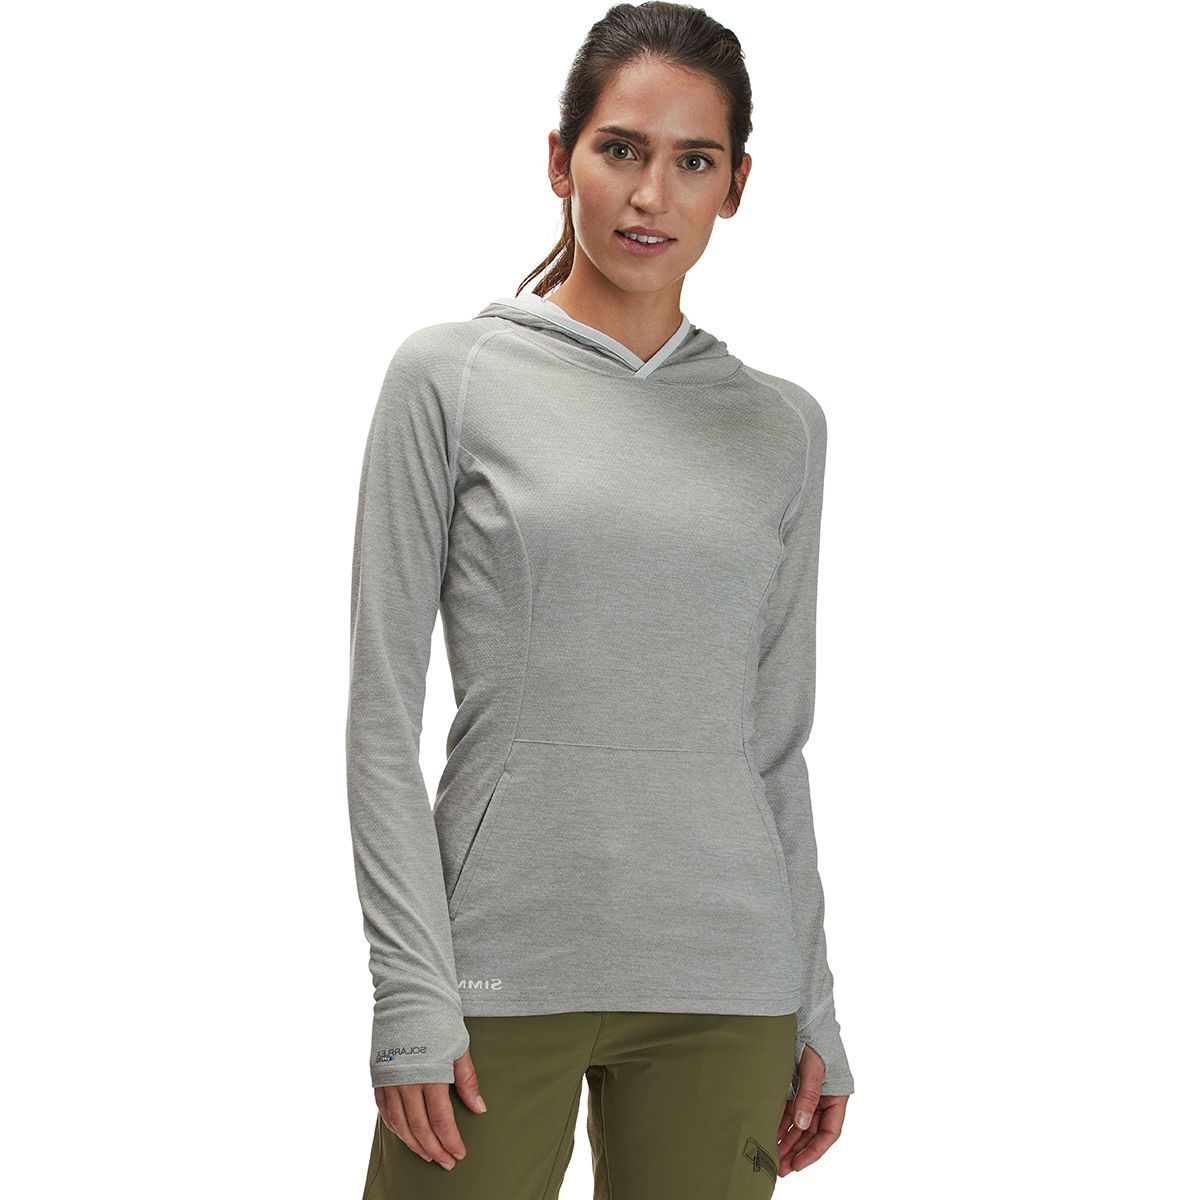 Simms BugStopper Hooded Shirt - Women's